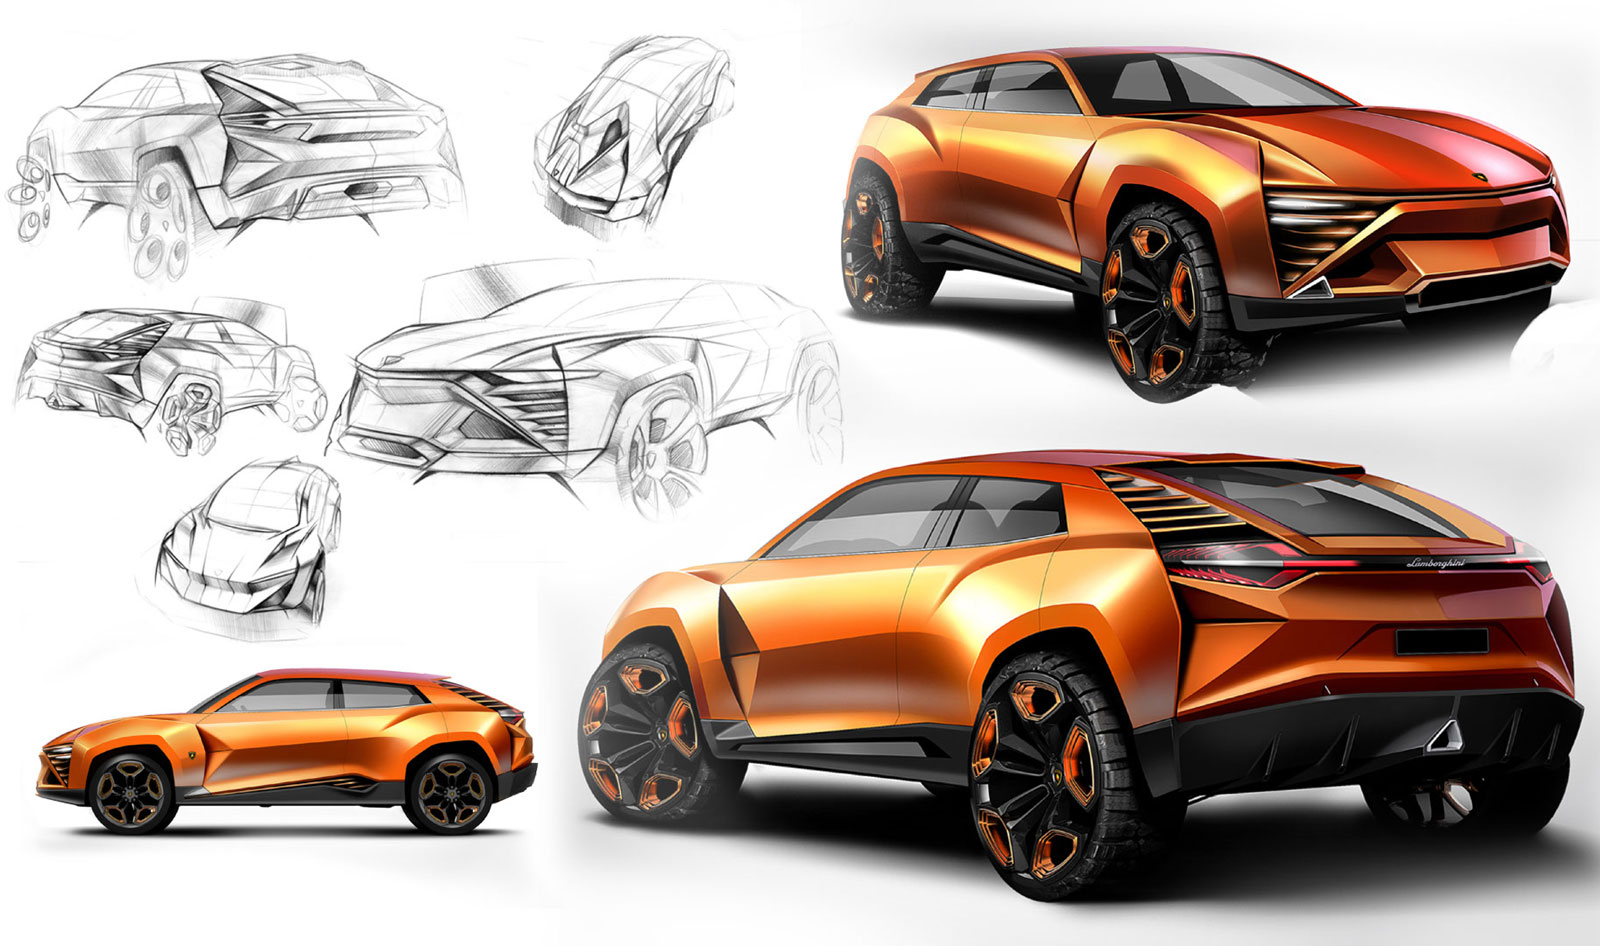 Lamborghini Concept Design Sketches - 248.3KB